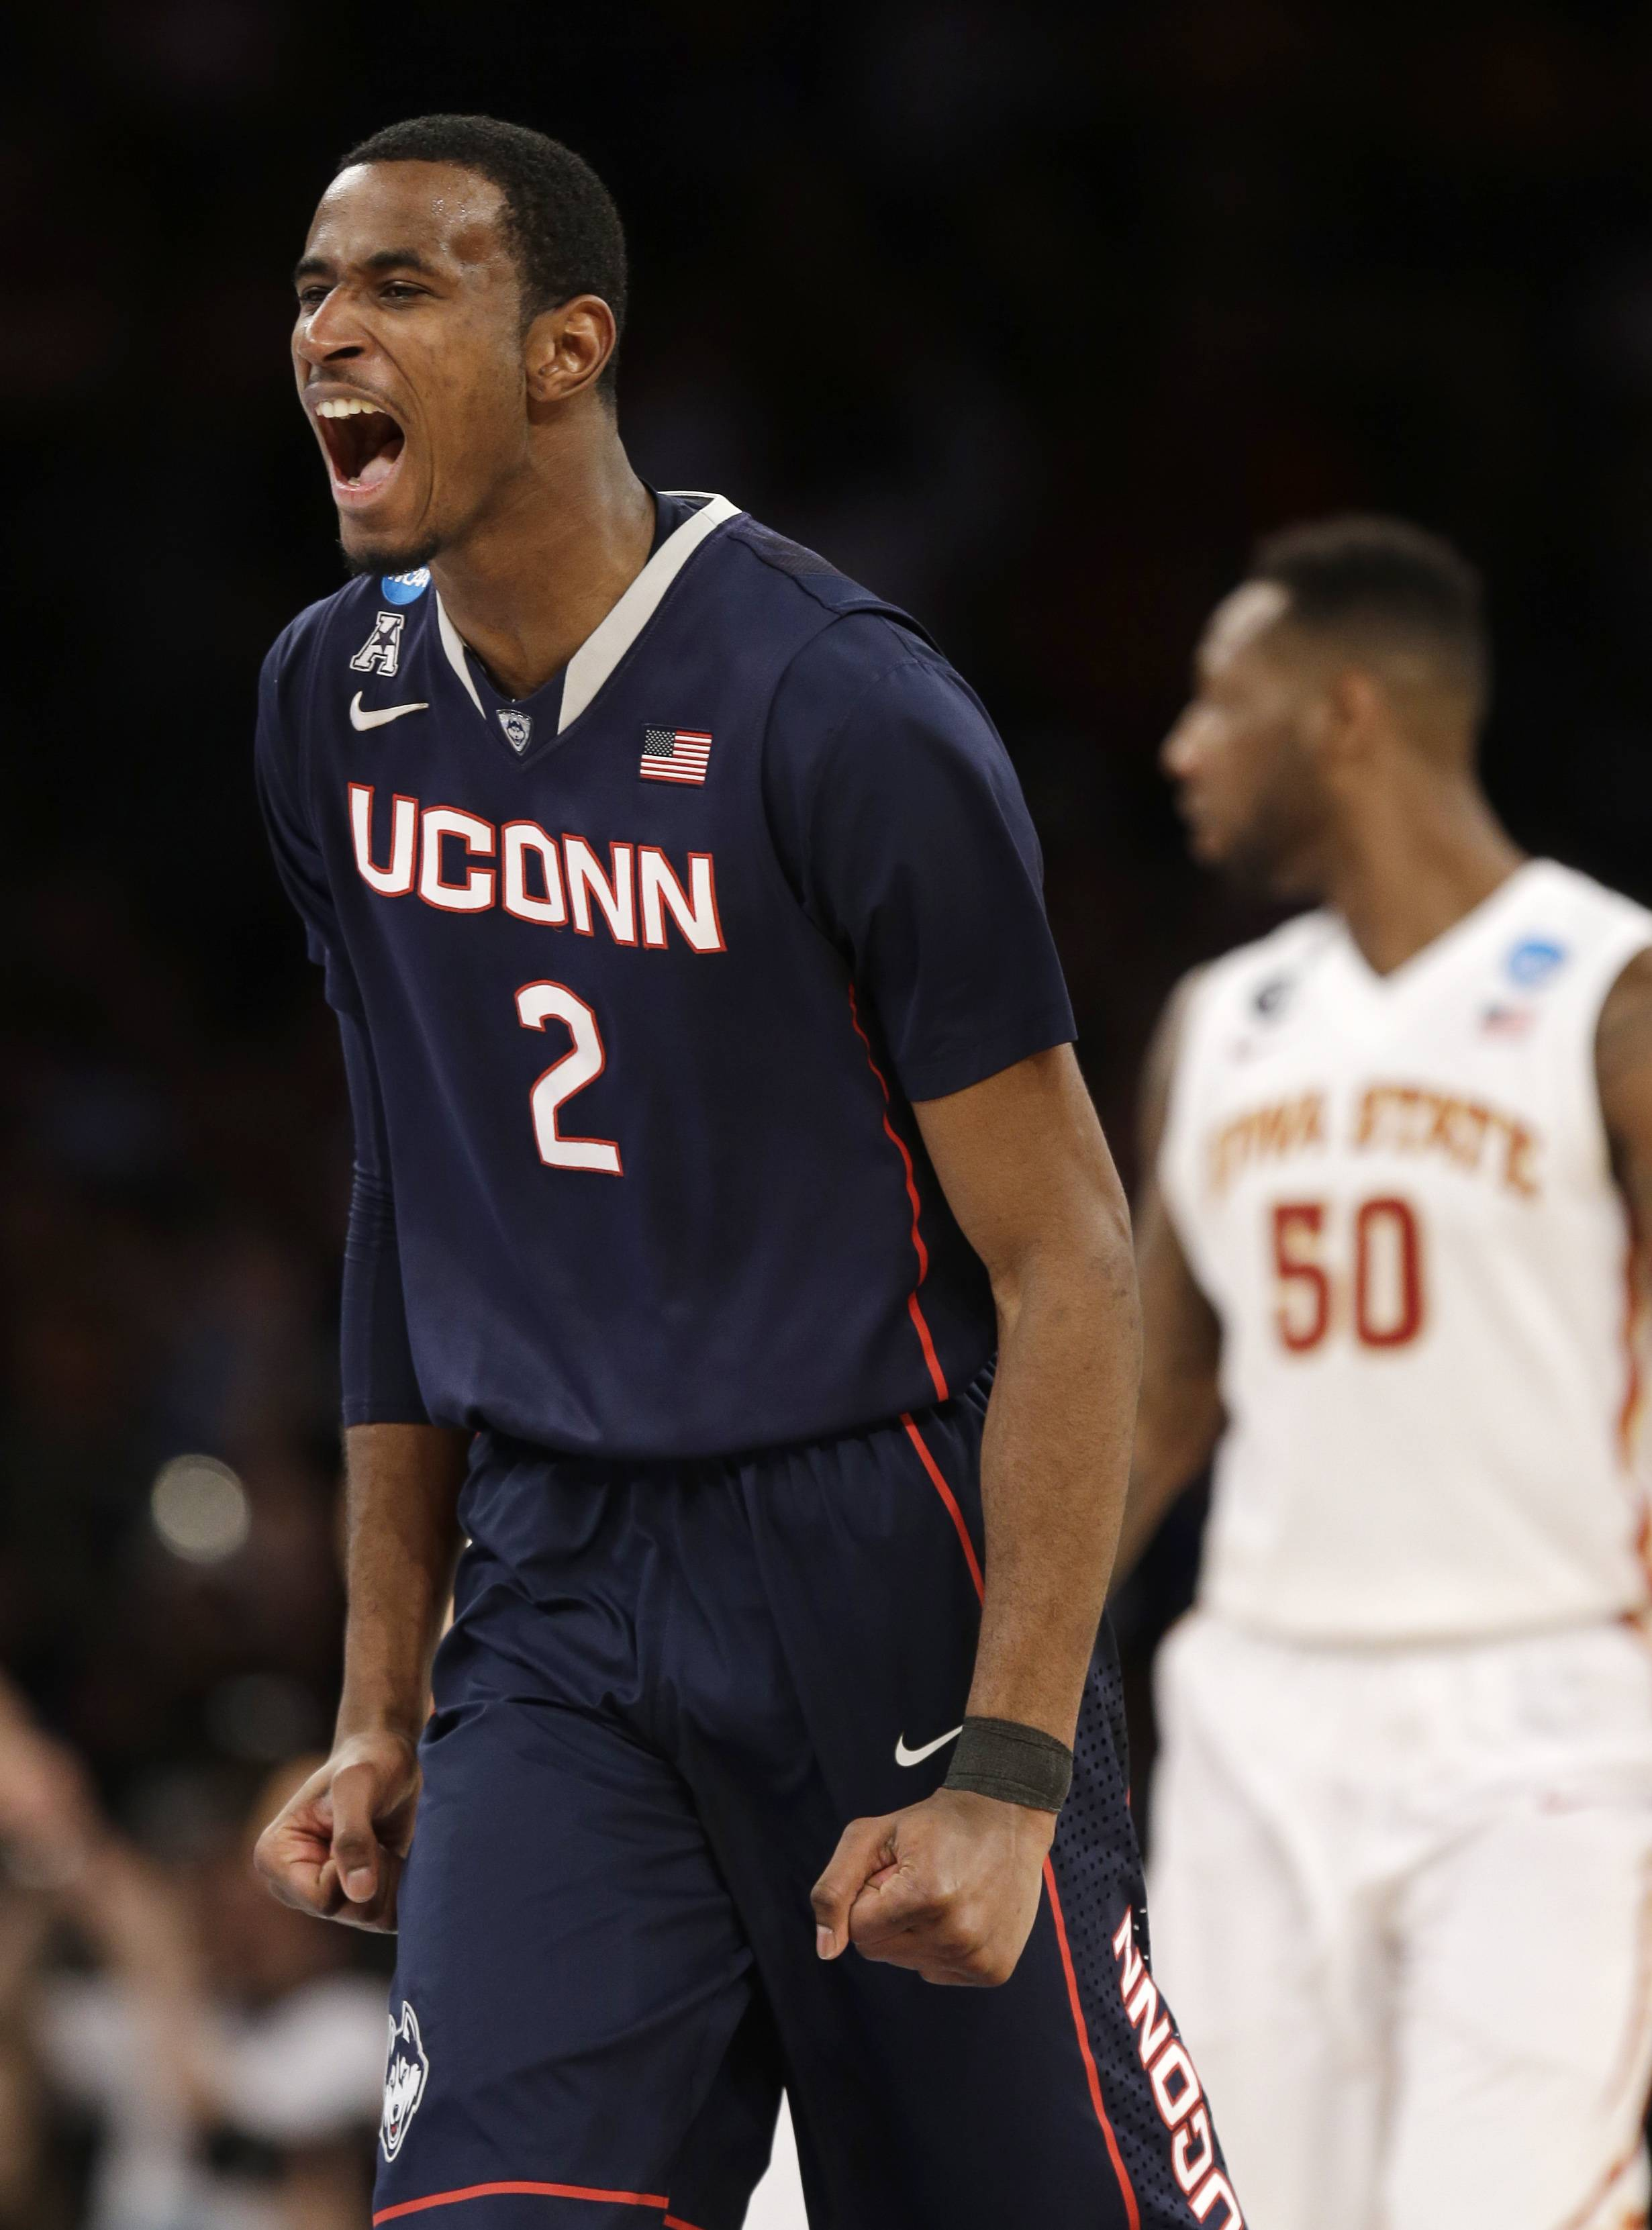 Connecticut's DeAndre Daniels has plenty of reasons to celebrate Friday. He scored 27 points, including 19 in the second half, to lead the Huskies over Iowa State to earn a berth in the East regional championship.